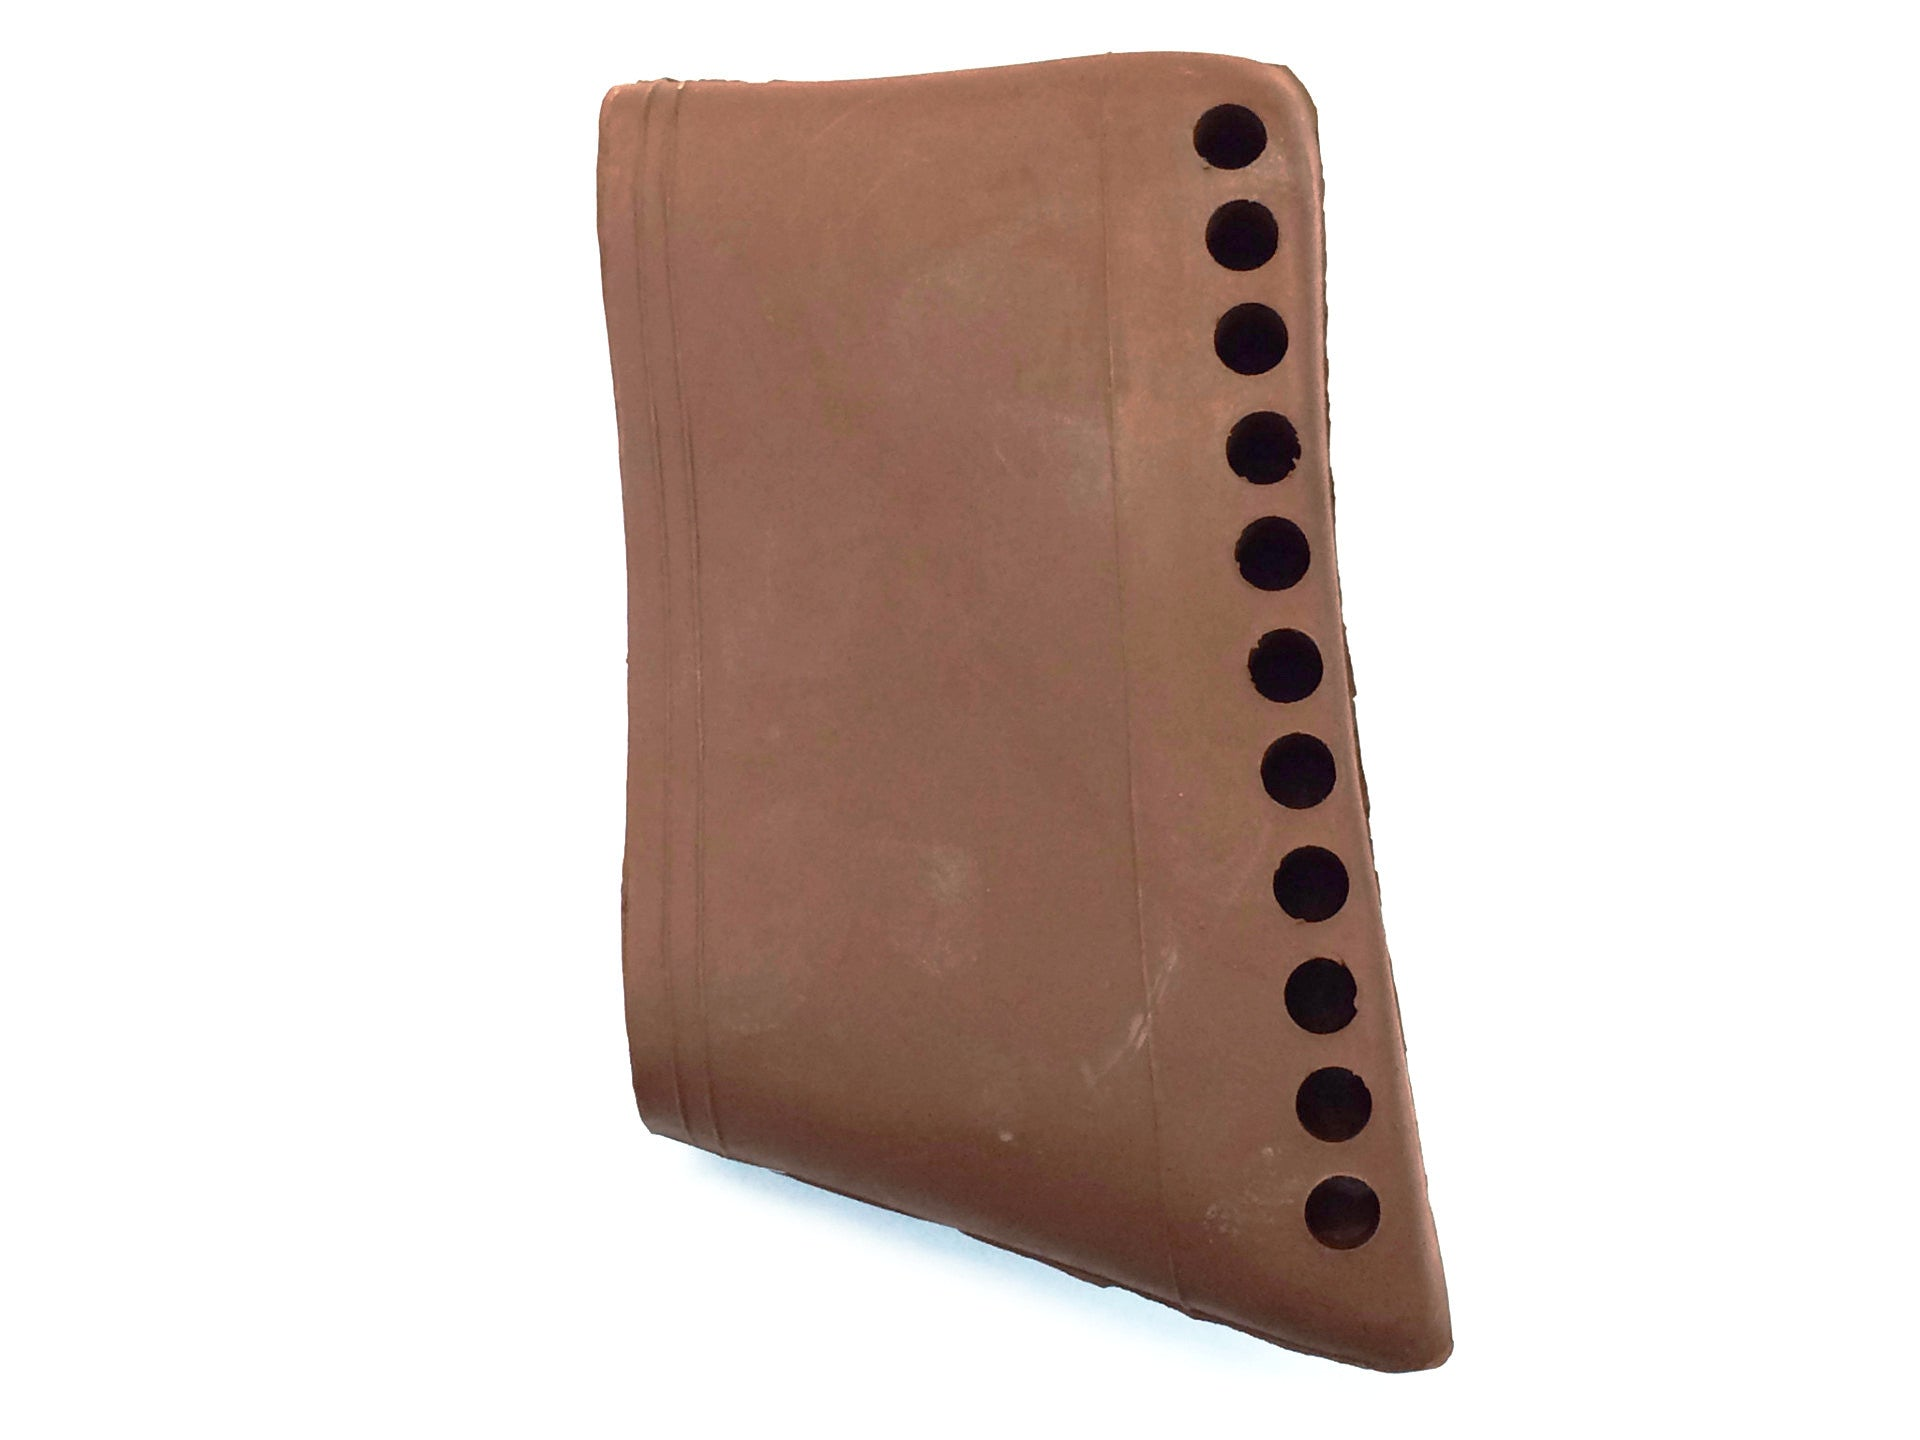 Osprey Slip-On Recoil Pad (8880)